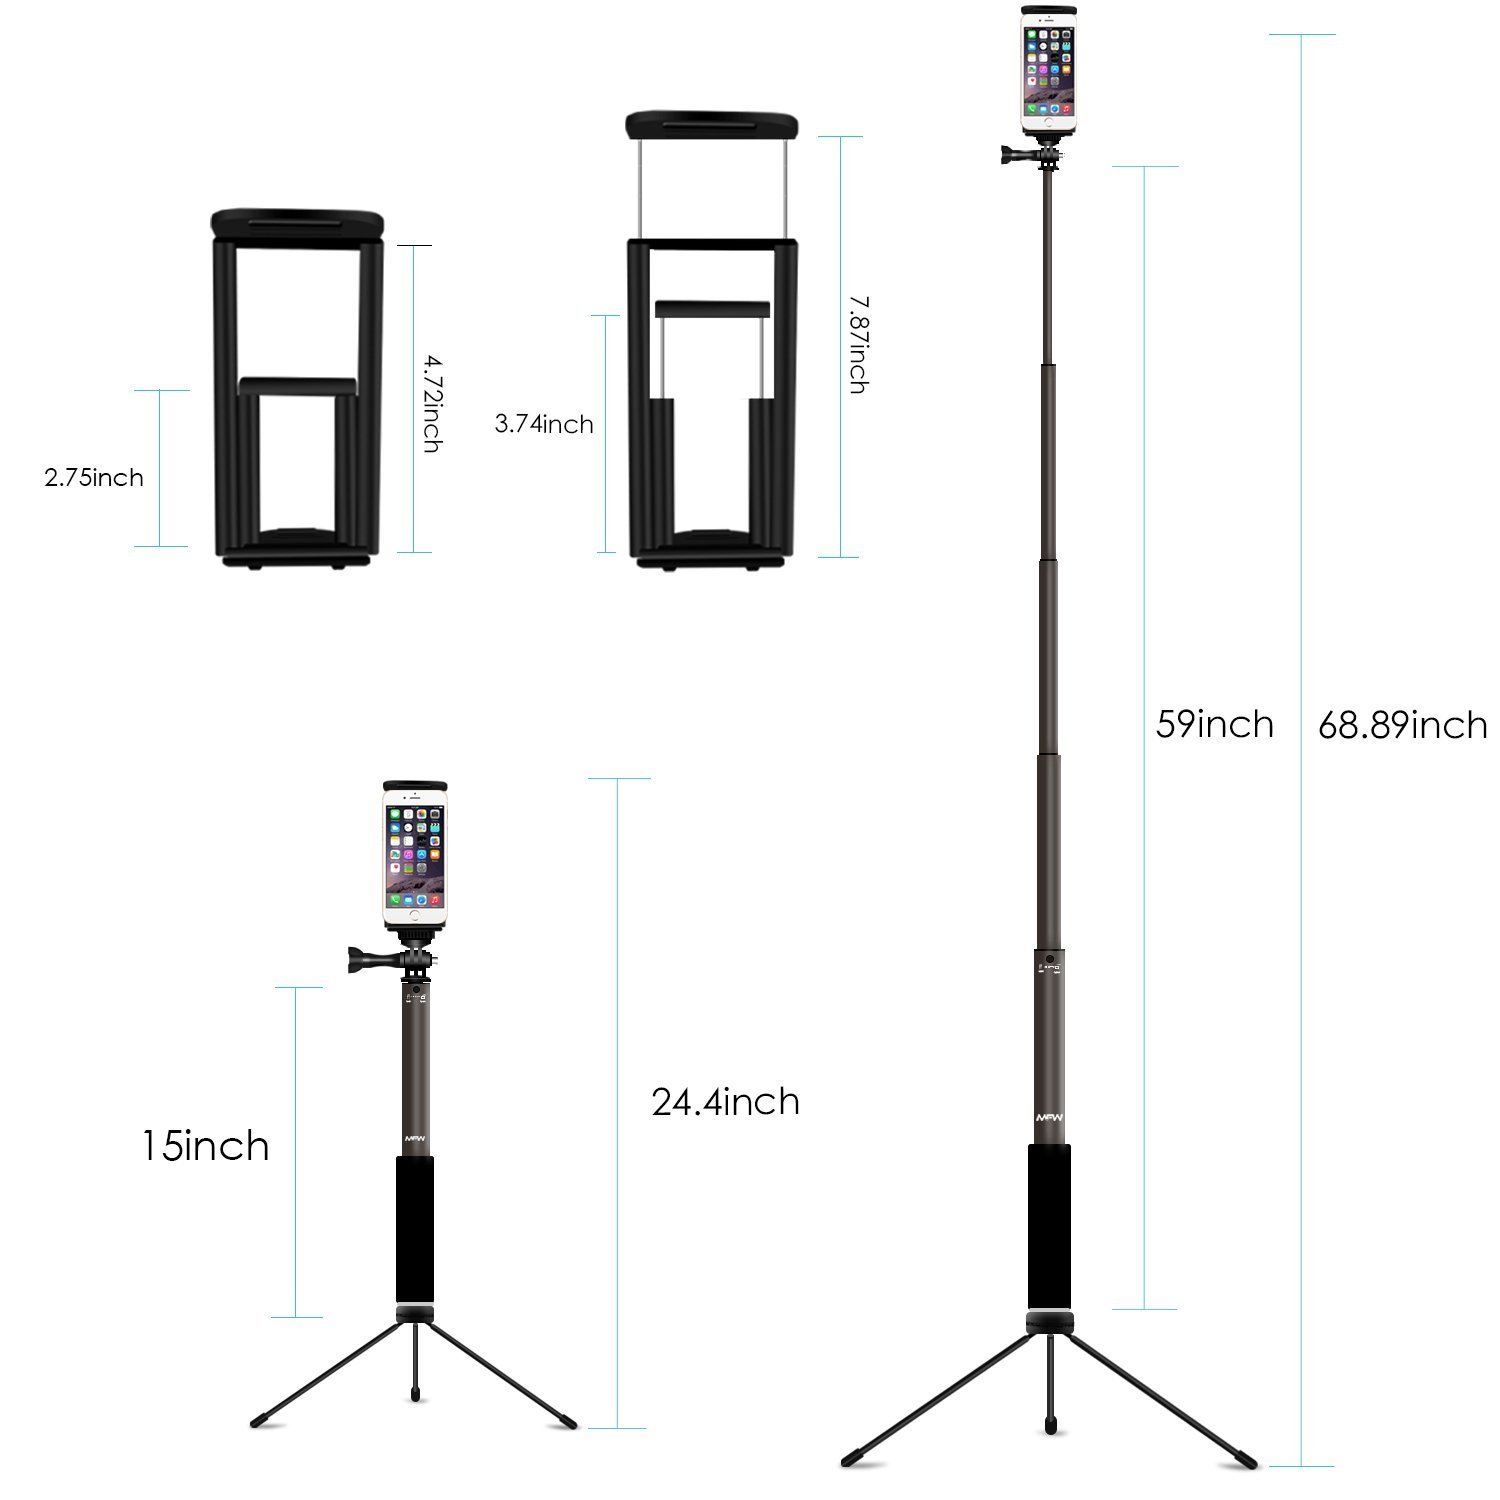 Bluetooth Selfie Stick with Tripod, Remote 59Inch MFW Extendable Monopod with Tripod Stand for iPhone X/8/7/6/Plus,Tablet,Samsung S7/S8,Android,GoPro Cameras by MFW (Image #6)